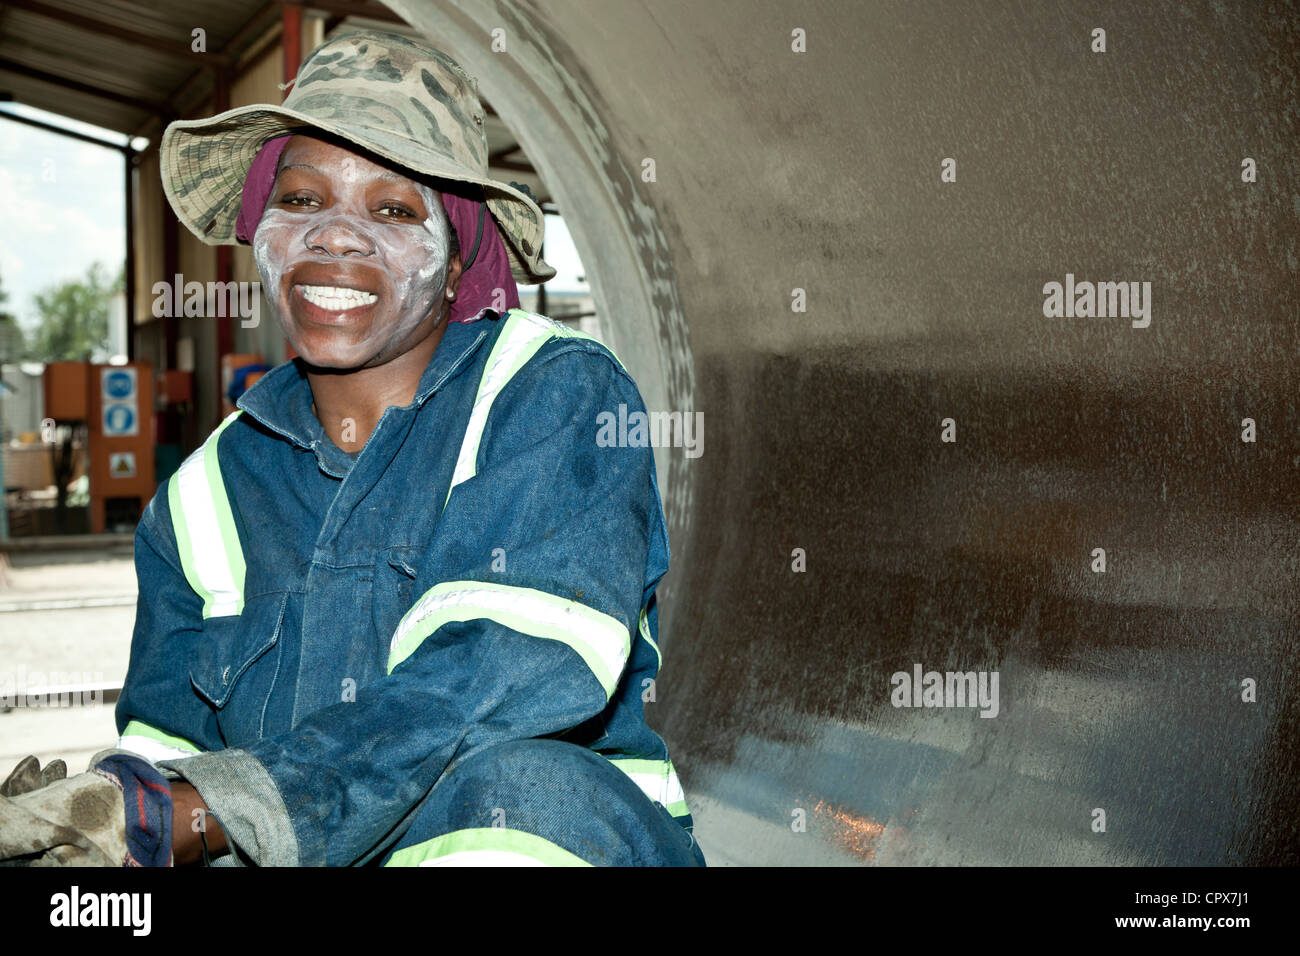 Black female factory worker cleans the inside of a large pipe, smiling - Stock Image